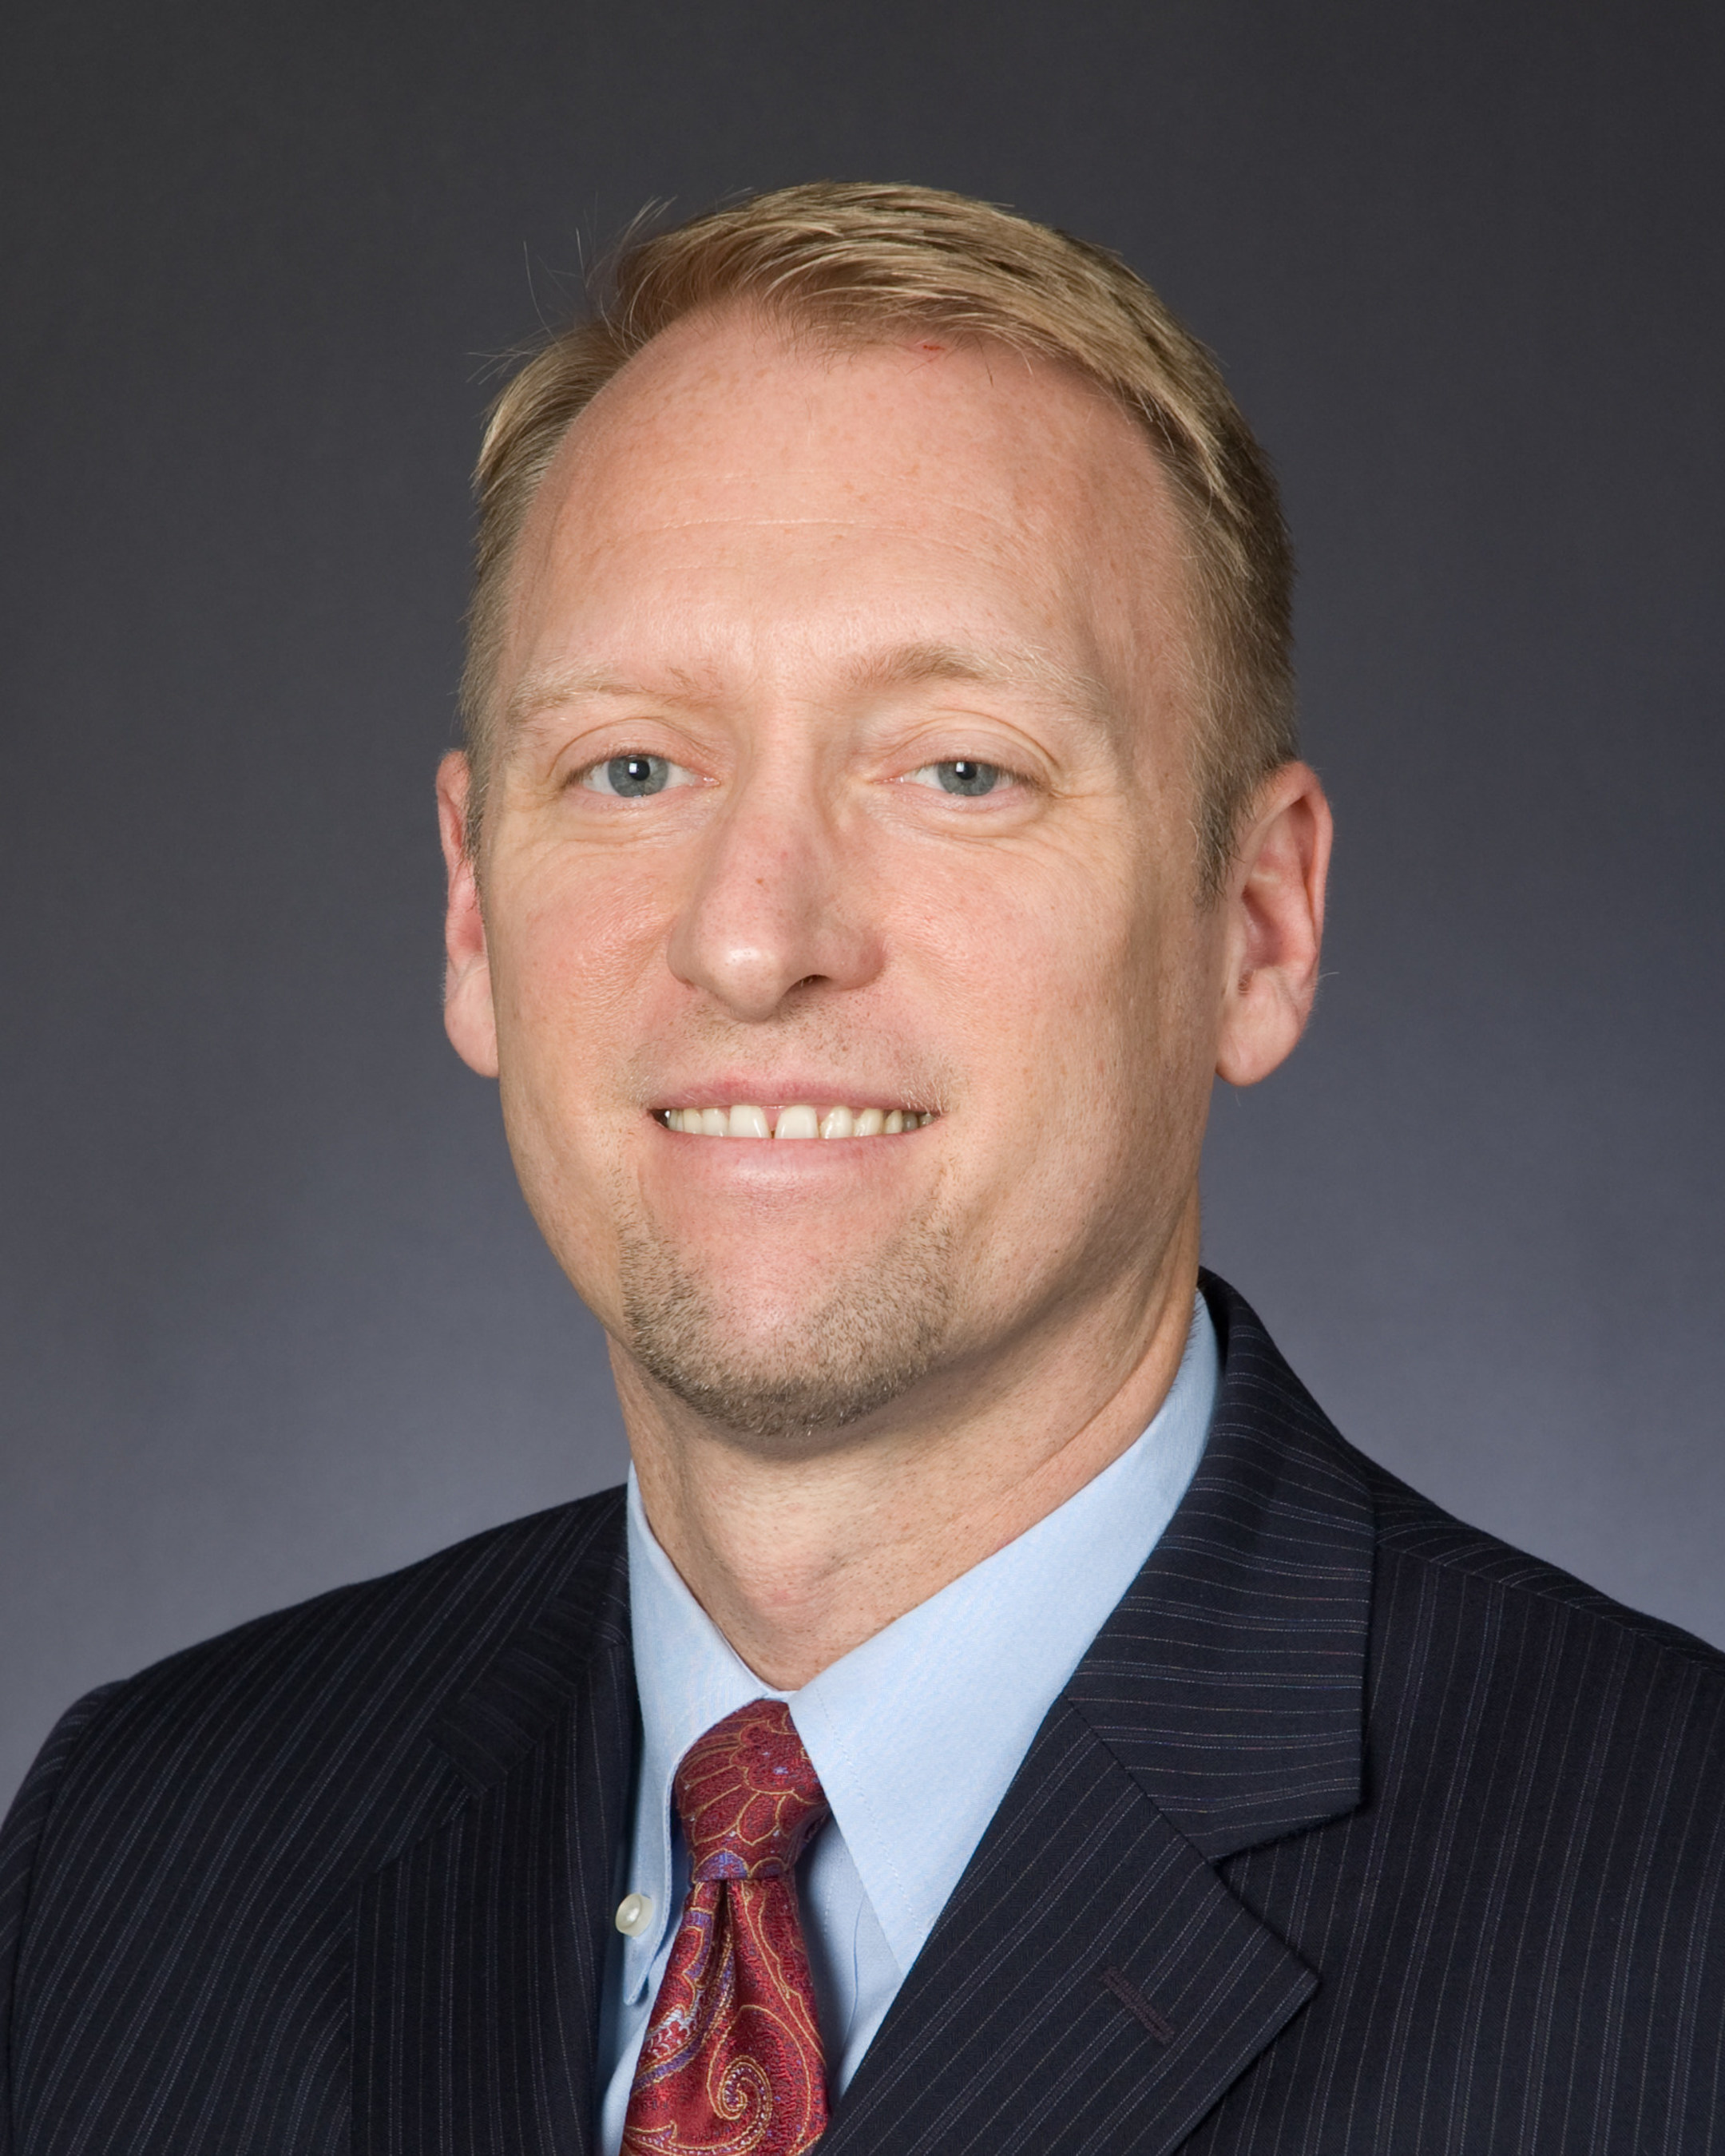 James P. Cote, BayCare's New Senior Vice President of Ambulatory Services